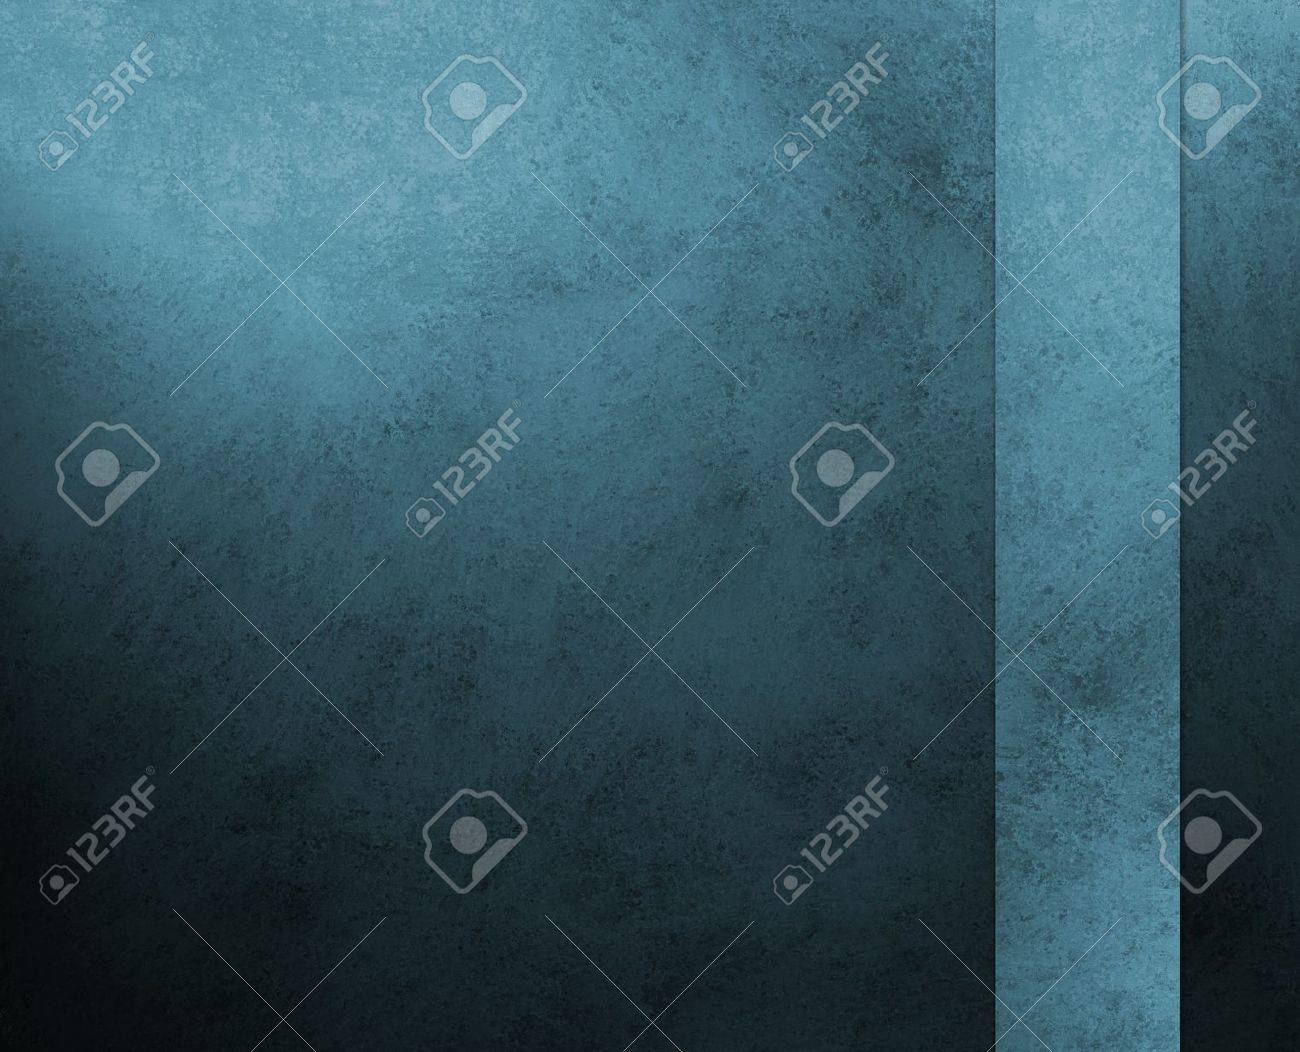 black blue background, dark colors, with vintage grunge background texture, abstract spots and stains around border, for elegant brochures, luxury ads, website templates, scrapbook Stock Photo - 14674424